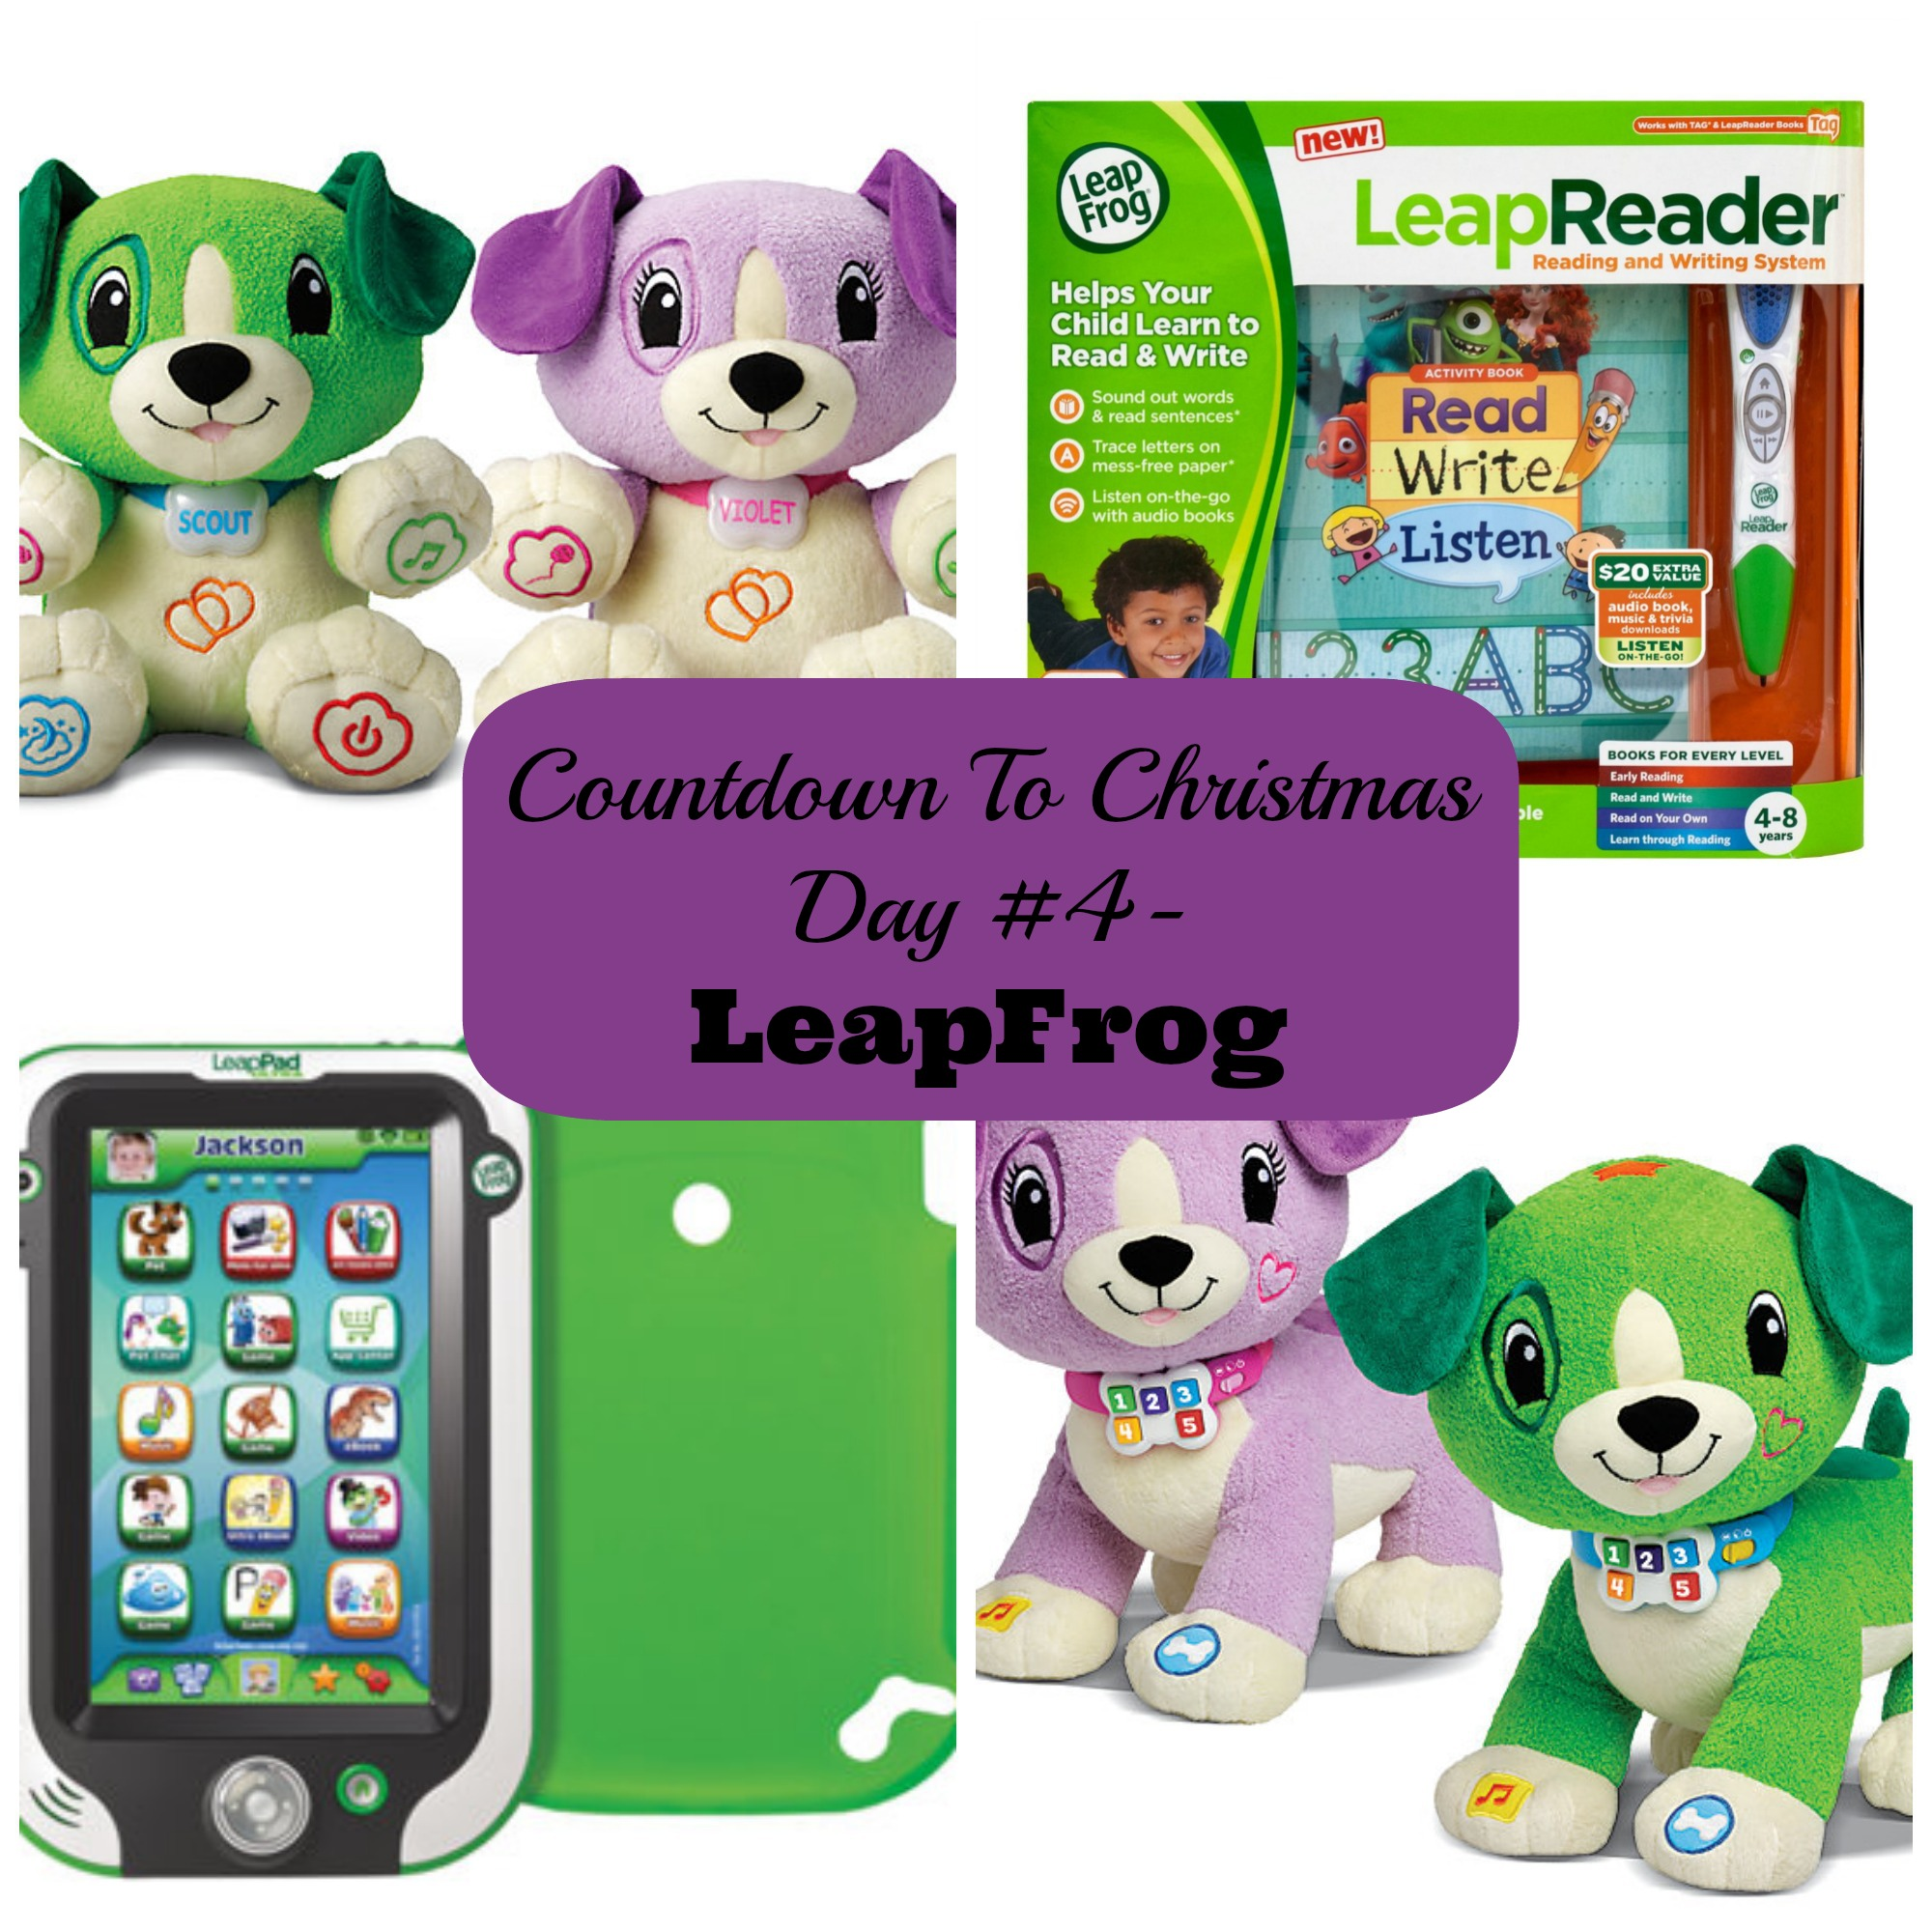 Countdown To Christmas Day 4 Educational Toys from LeapFrog